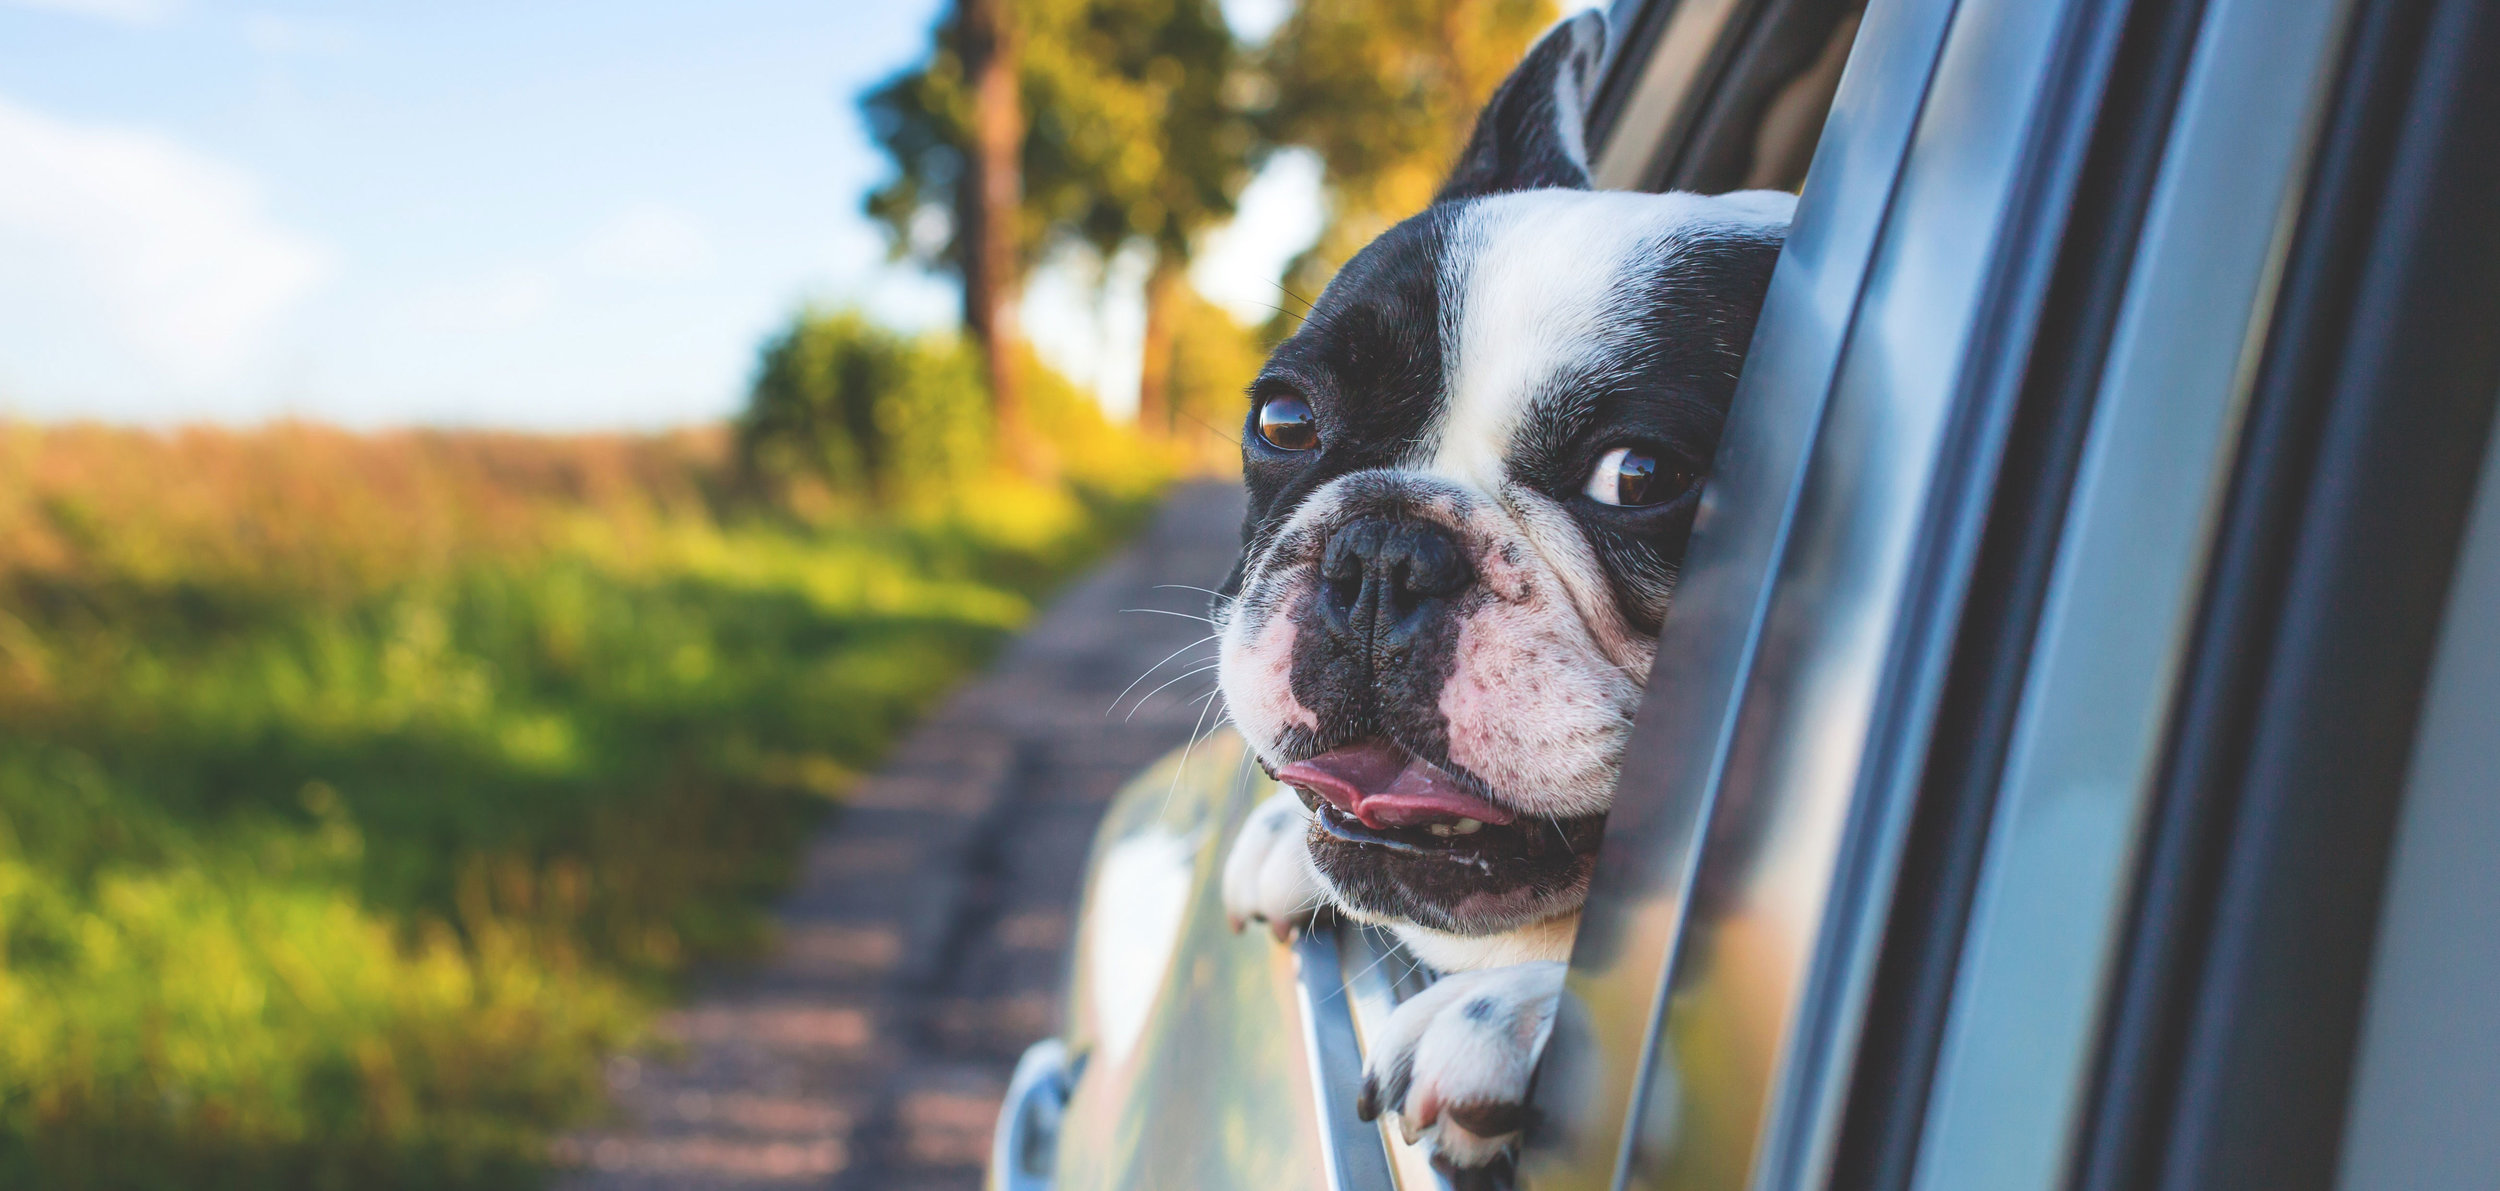 Pet Taxi - Need Help Getting Your Pet Around? Our Pet Taxi Service is Here to Help!